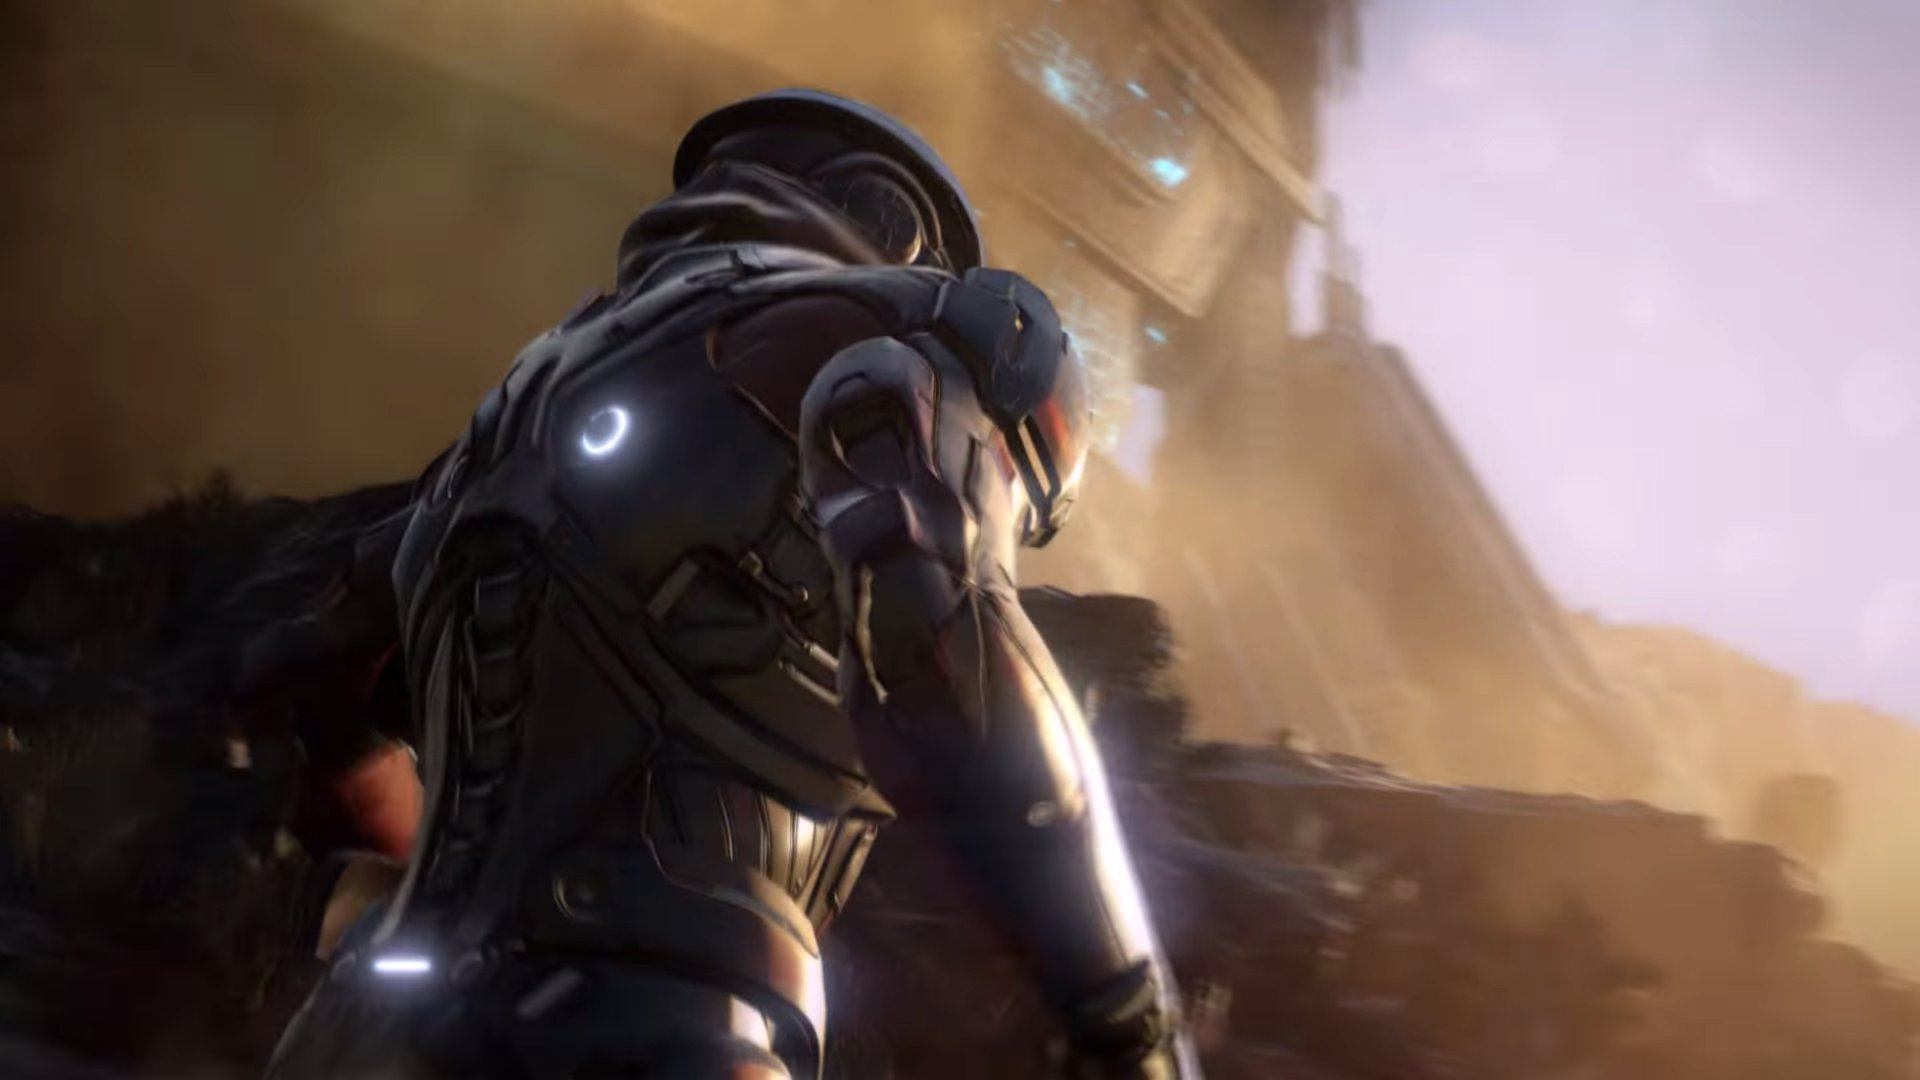 Mass Effect Andromeda Wallpaper Mass Effect 4 Andromeda Sci-fi